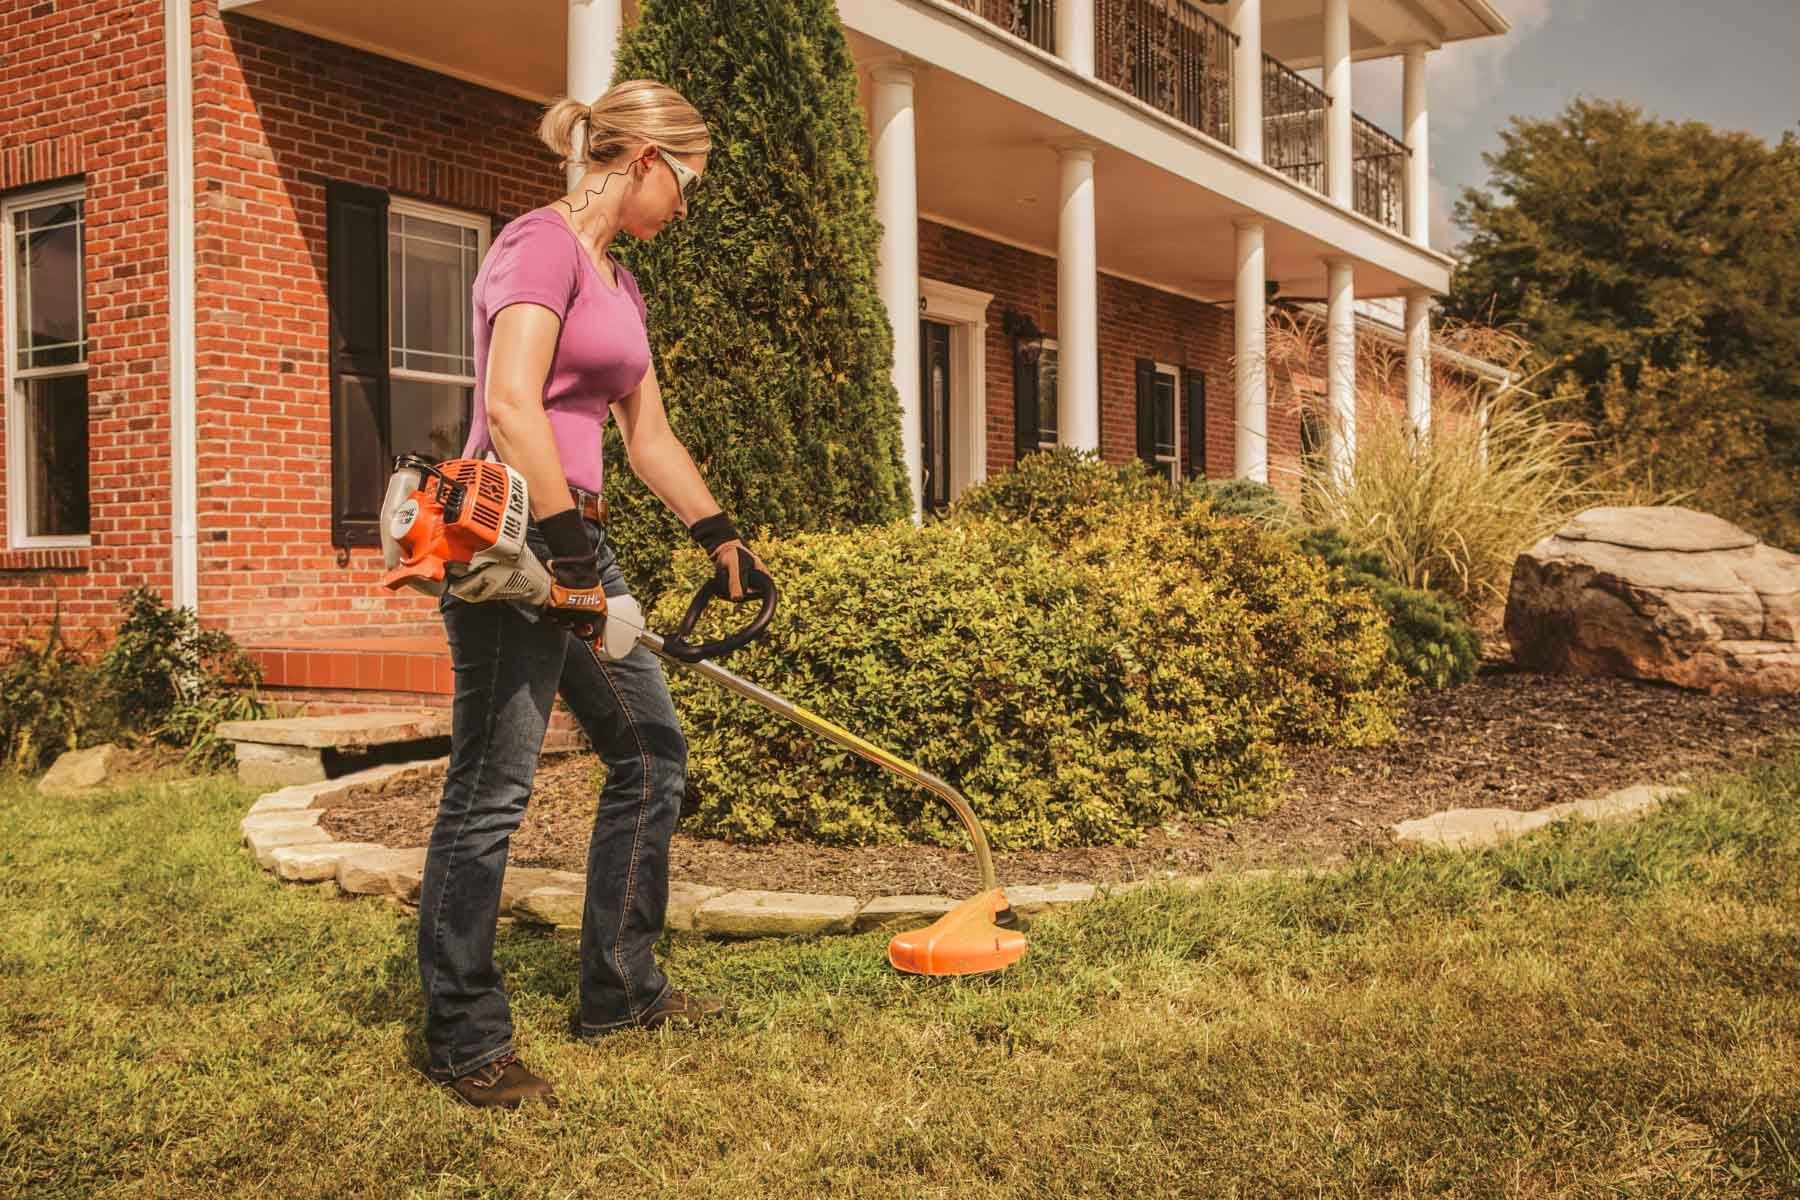 STIHL FS 38 In Action